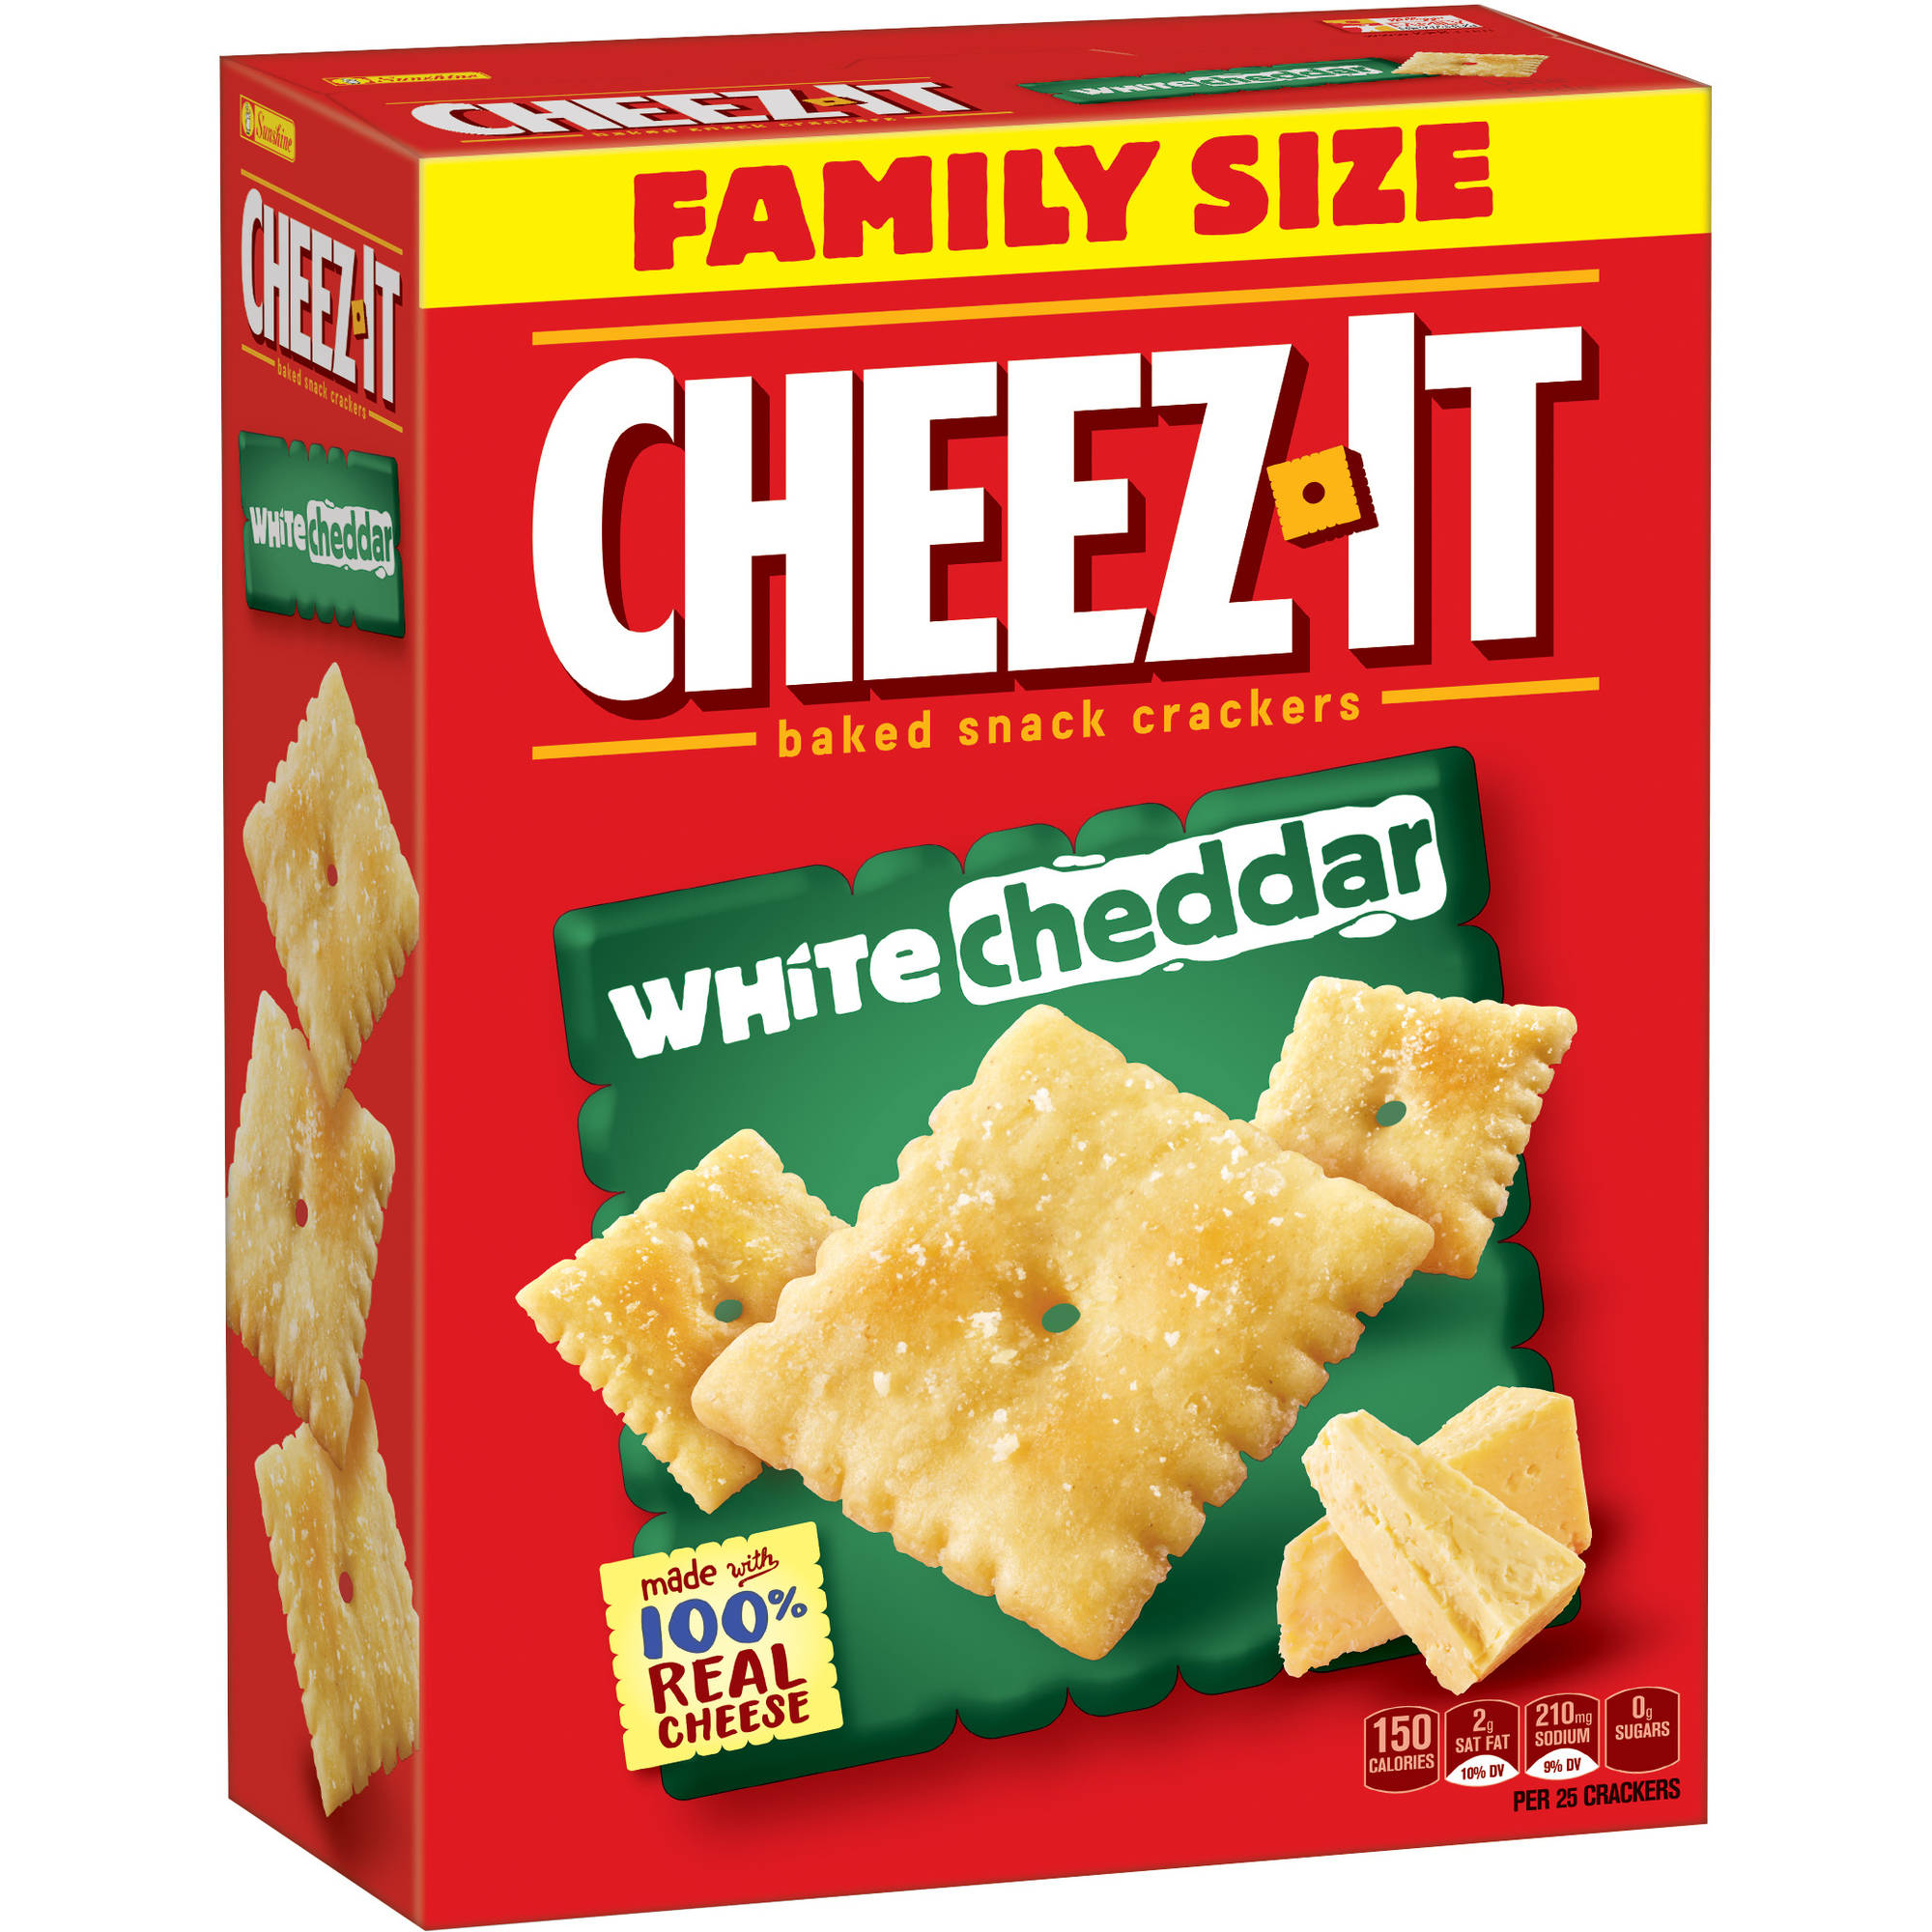 Cheez-It White Cheddar Baked Snack Crackers, 21 oz